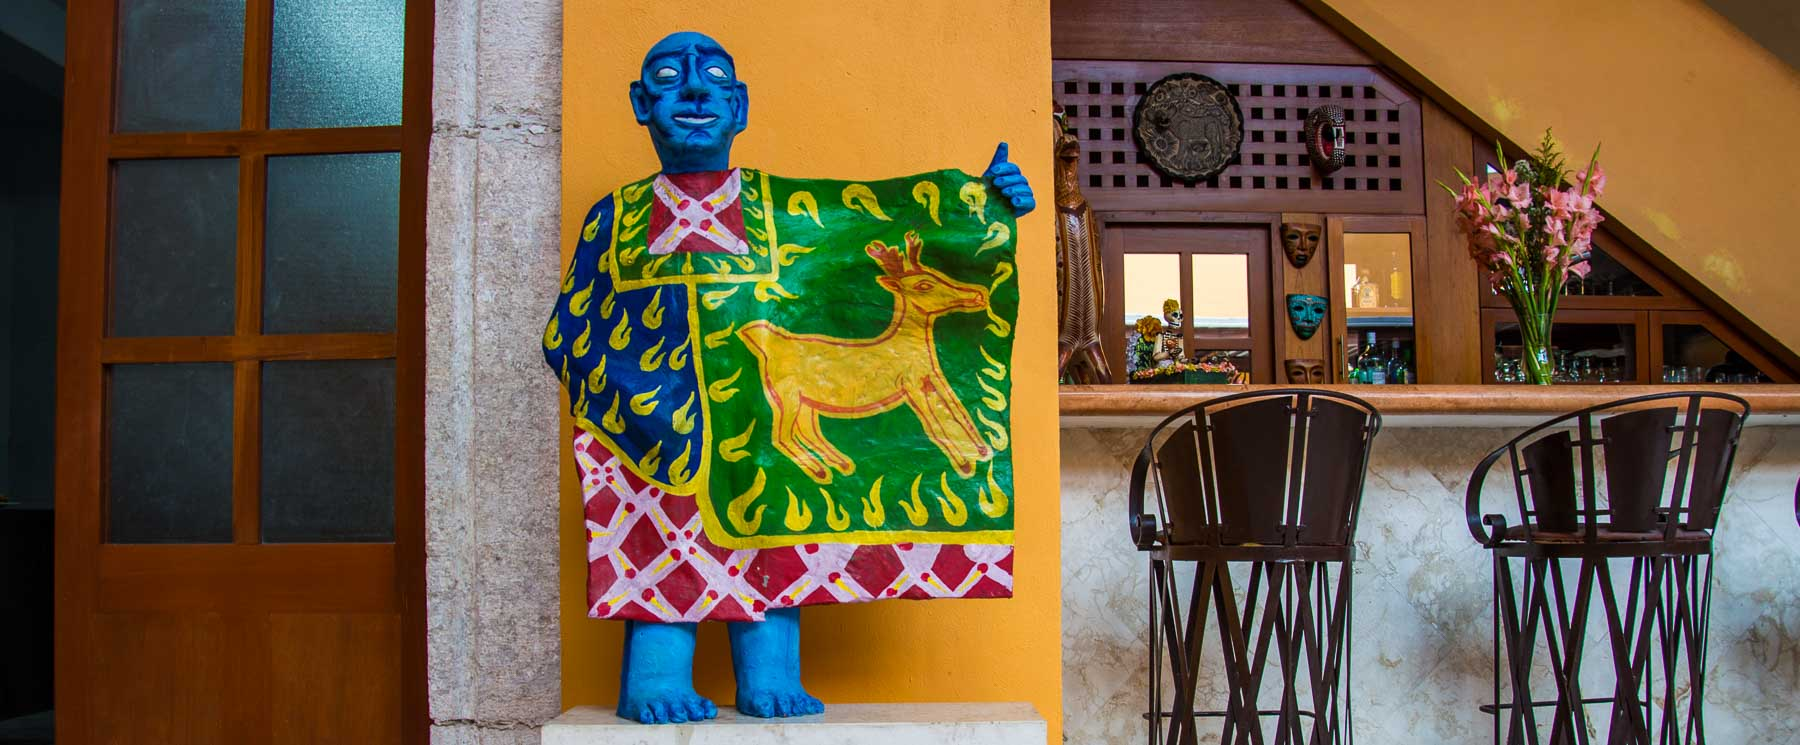 Sculpture of blue man holding a deer banner in the Valladolid house.